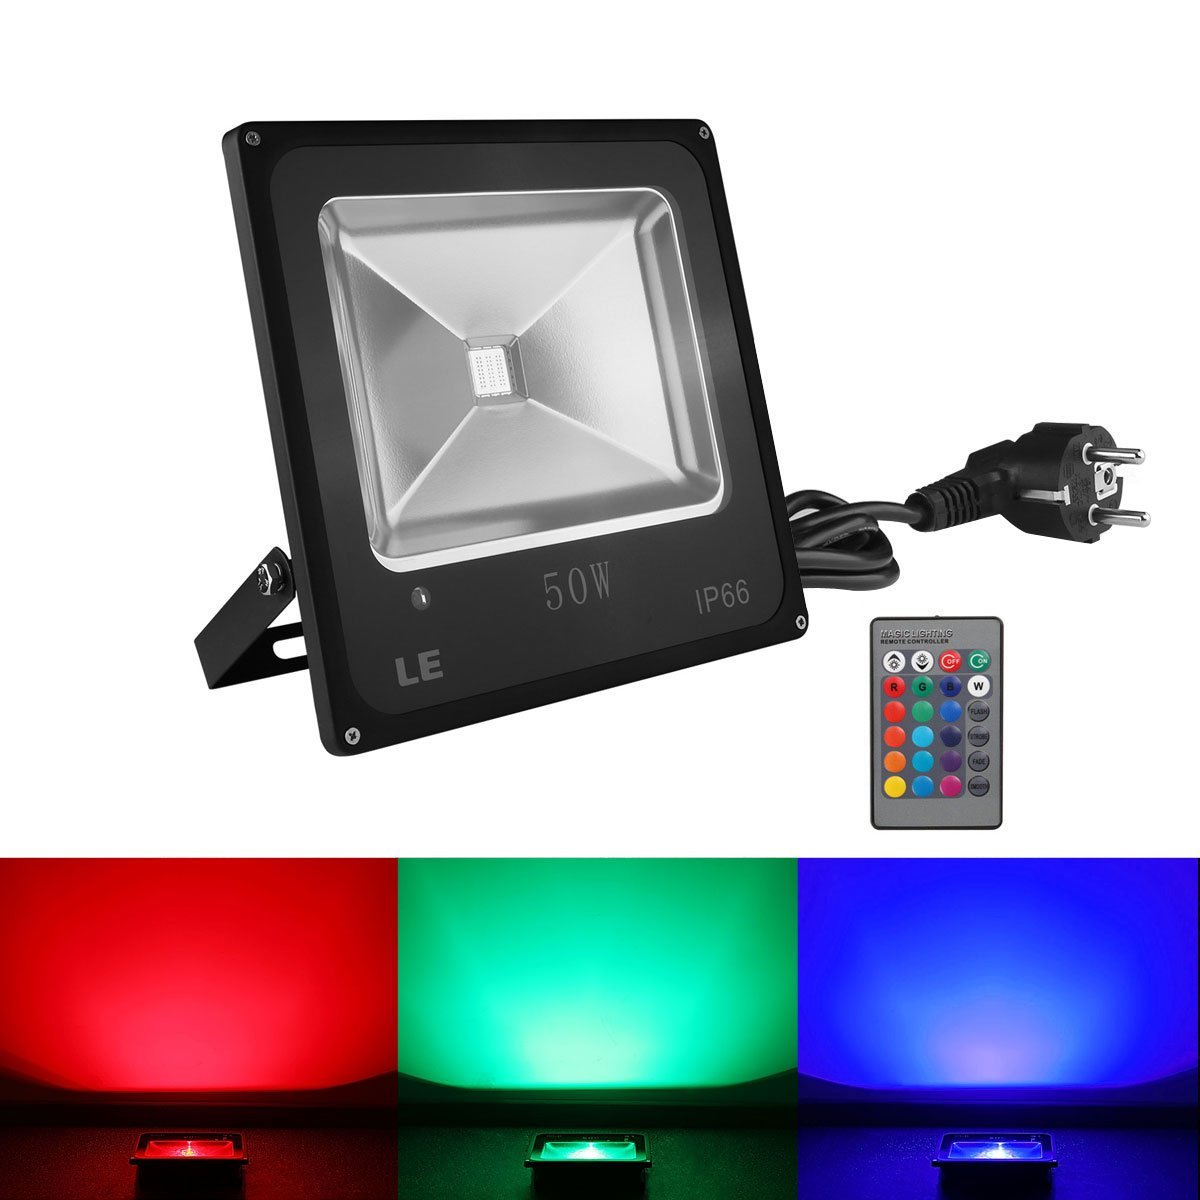 le 10w 30w 50w led rgb strahler flutlicht 16 farben 4 modi wasserdicht ip66 ebay. Black Bedroom Furniture Sets. Home Design Ideas